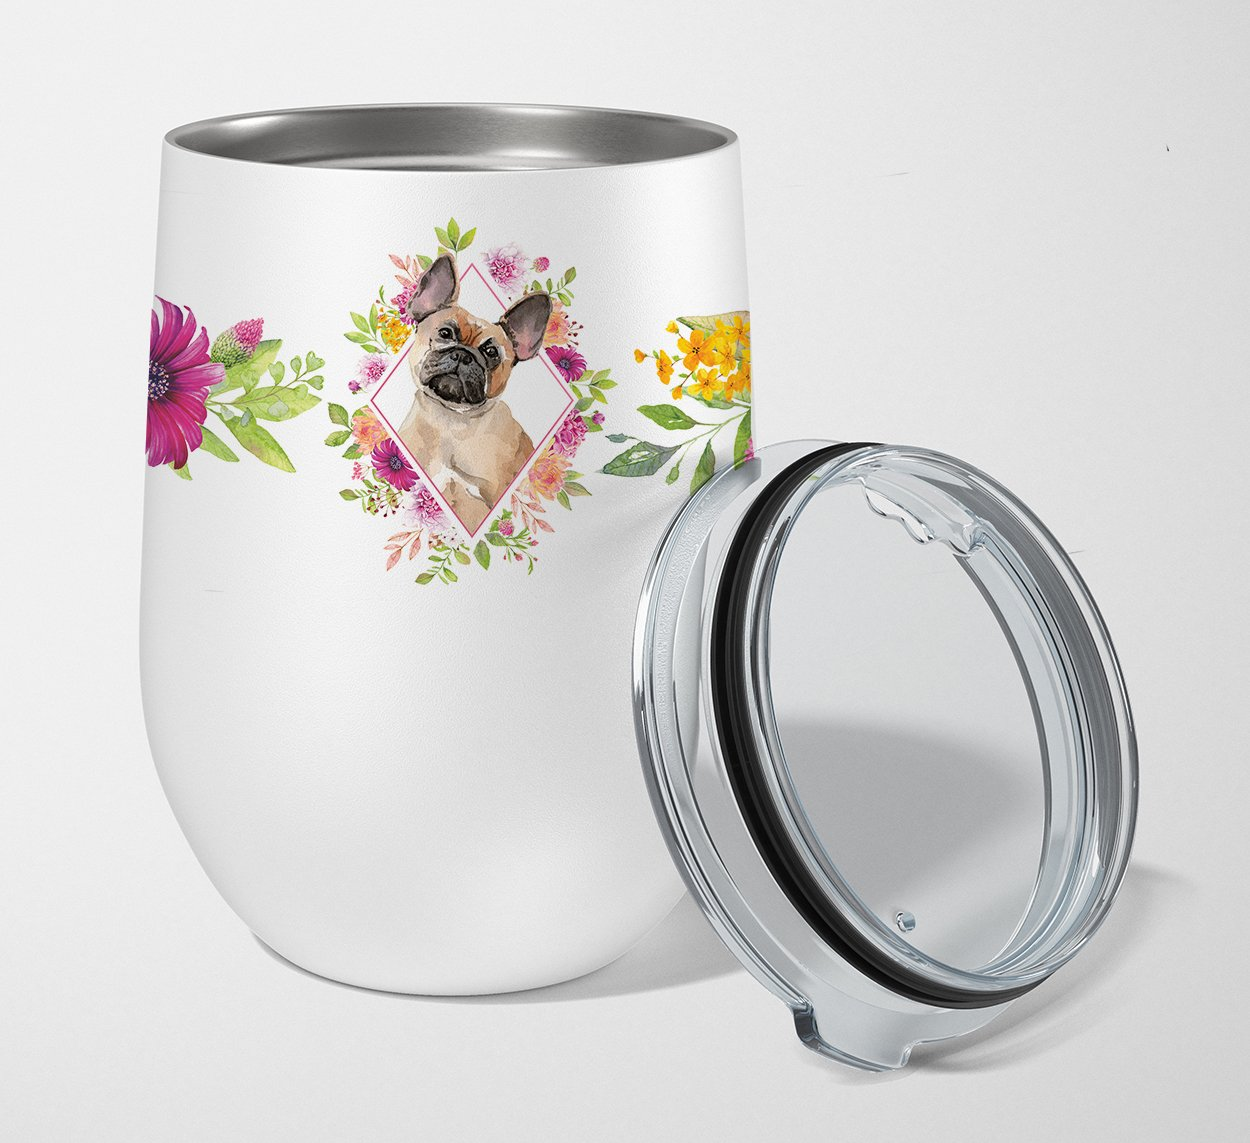 Fawn French Bulldog Pink Flowers Stainless Steel 12 oz Stemless Wine Glass CK4238TBL12 by Caroline's Treasures